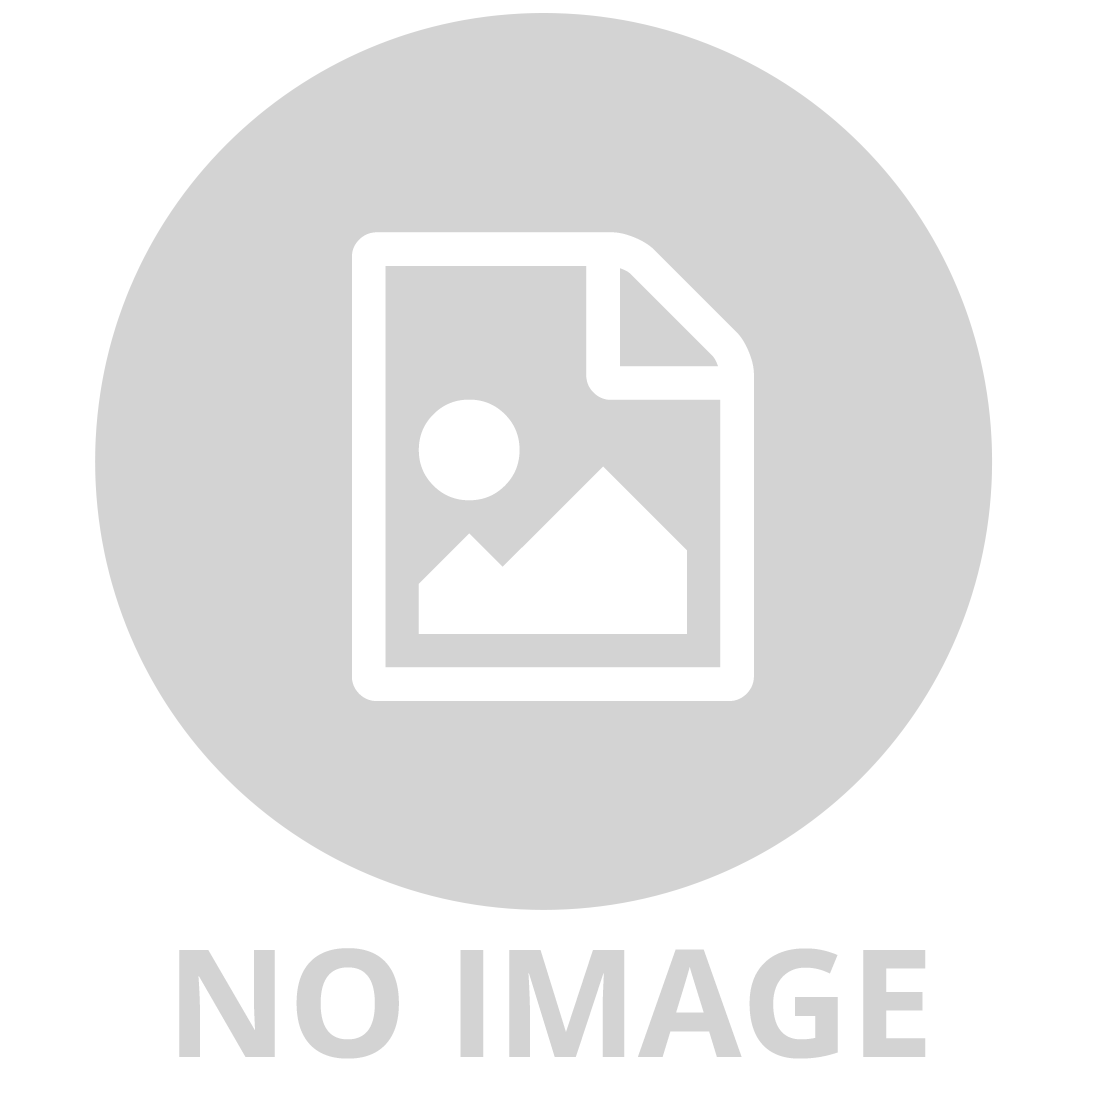 LULLABY GLOWORM PINK